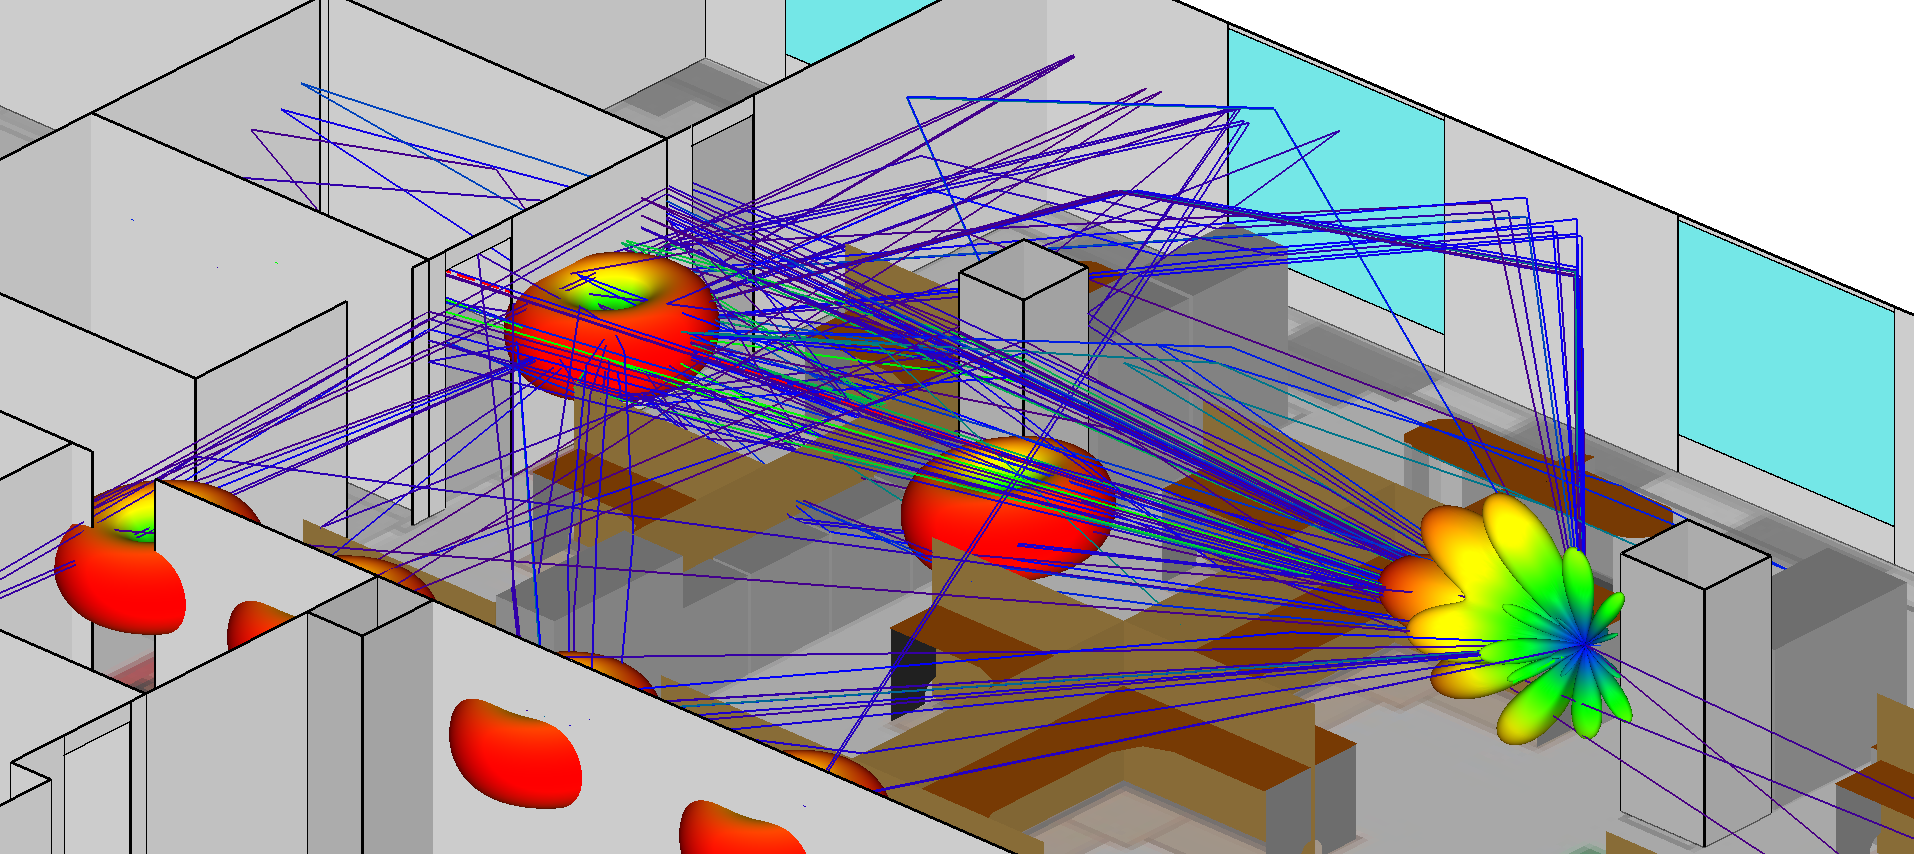 Figure 4a: Specular propagation paths to RX7